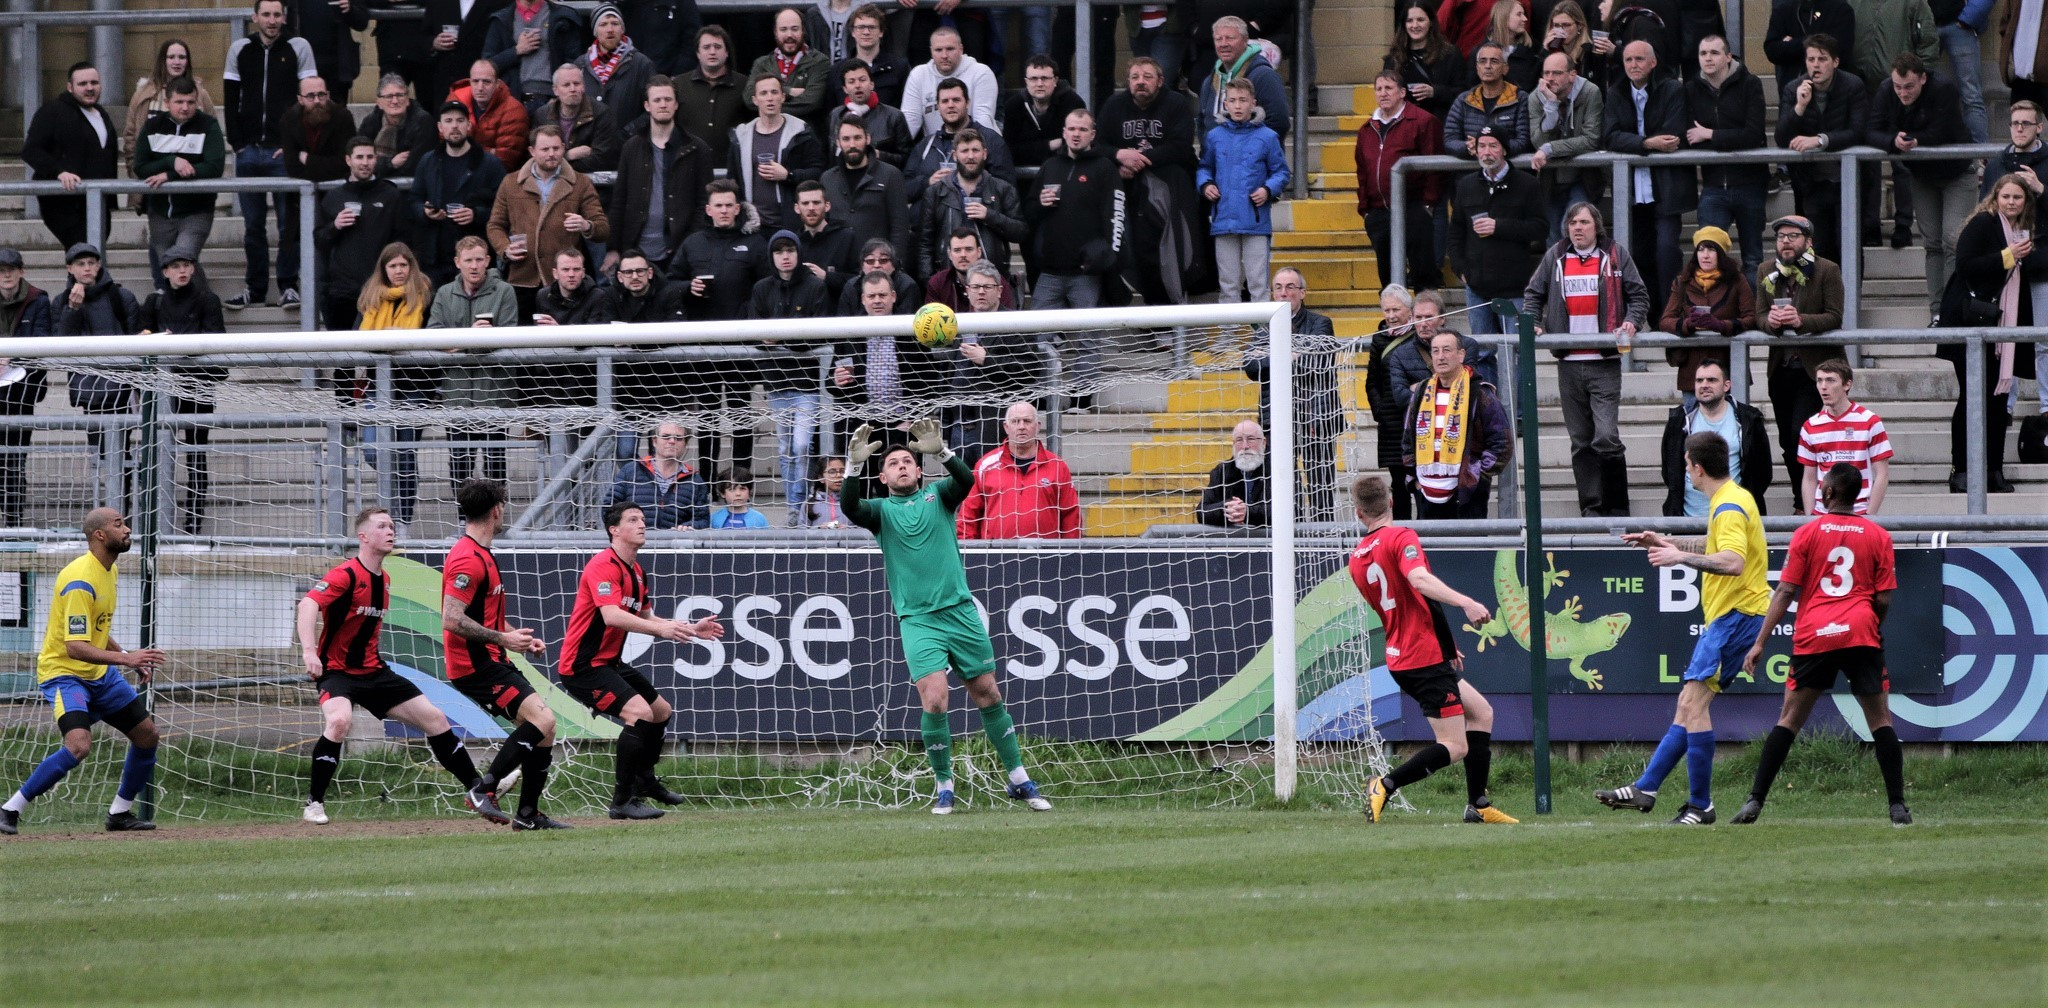 Dean Inman's header is saved at Lewes as Kingstonian's sizeable away support looks on. Pic: James Boyes.